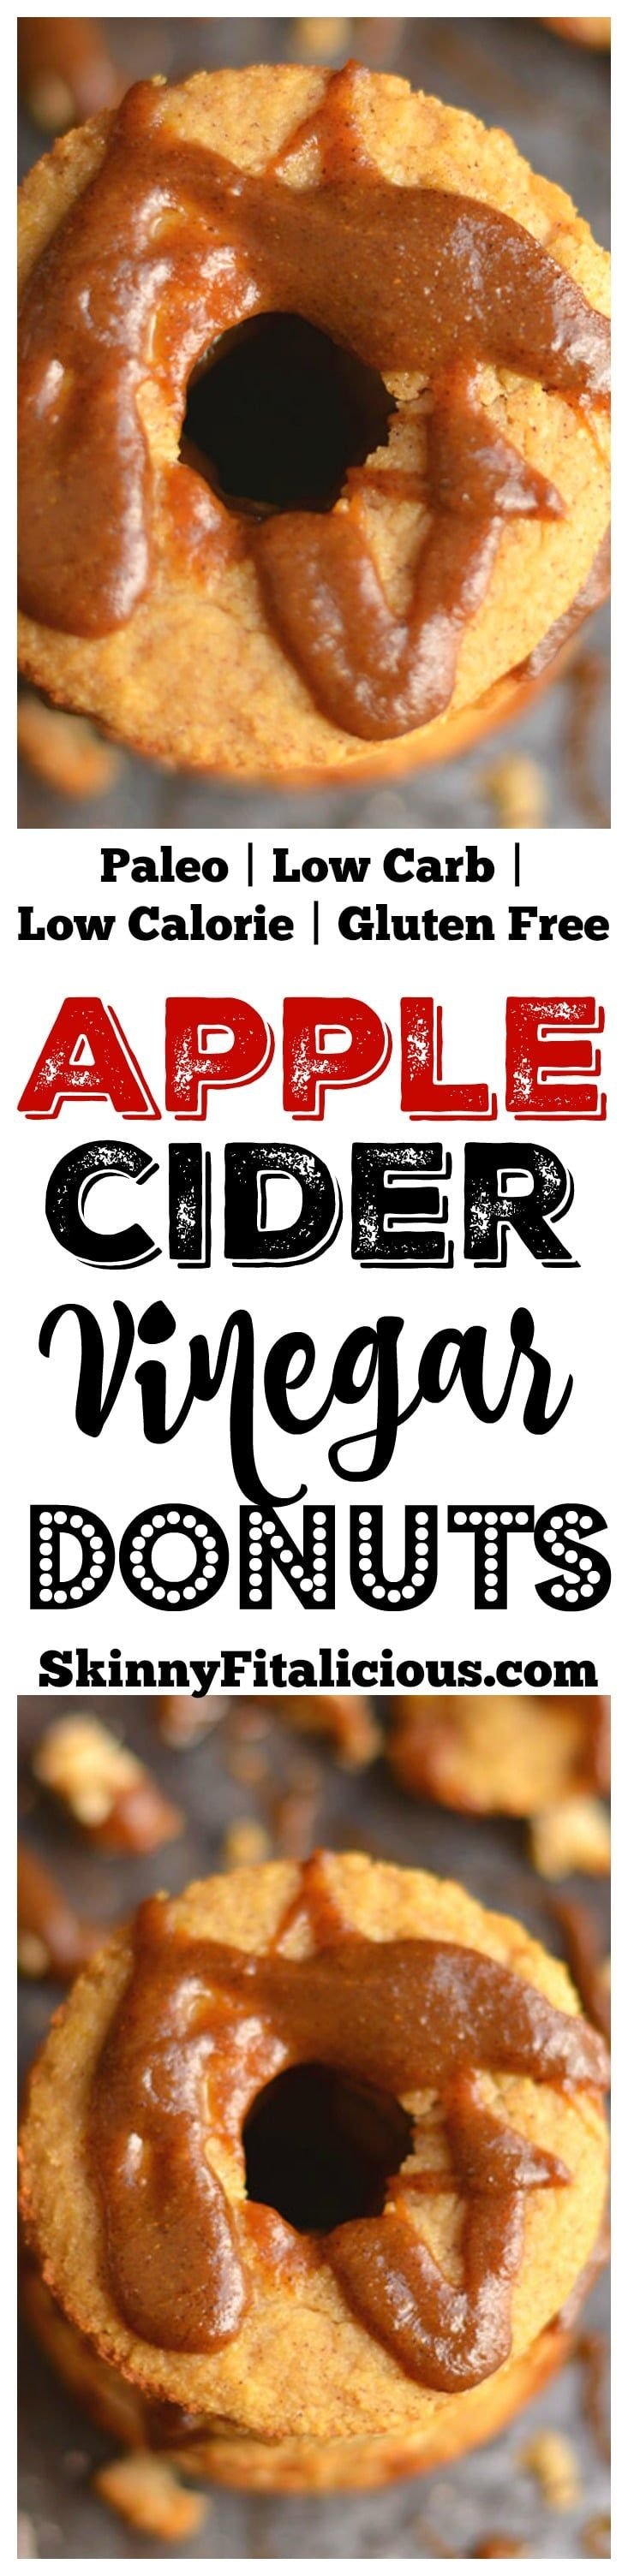 Paleo Apple Cider Vinegar Donuts drizzled in turmeric pumpkin spice latte! These grain free donuts are loaded with fiber, protein and amazing health benefits. A simple every day healthy donut recipe! Gluten Free + Low Calorie + Paleo